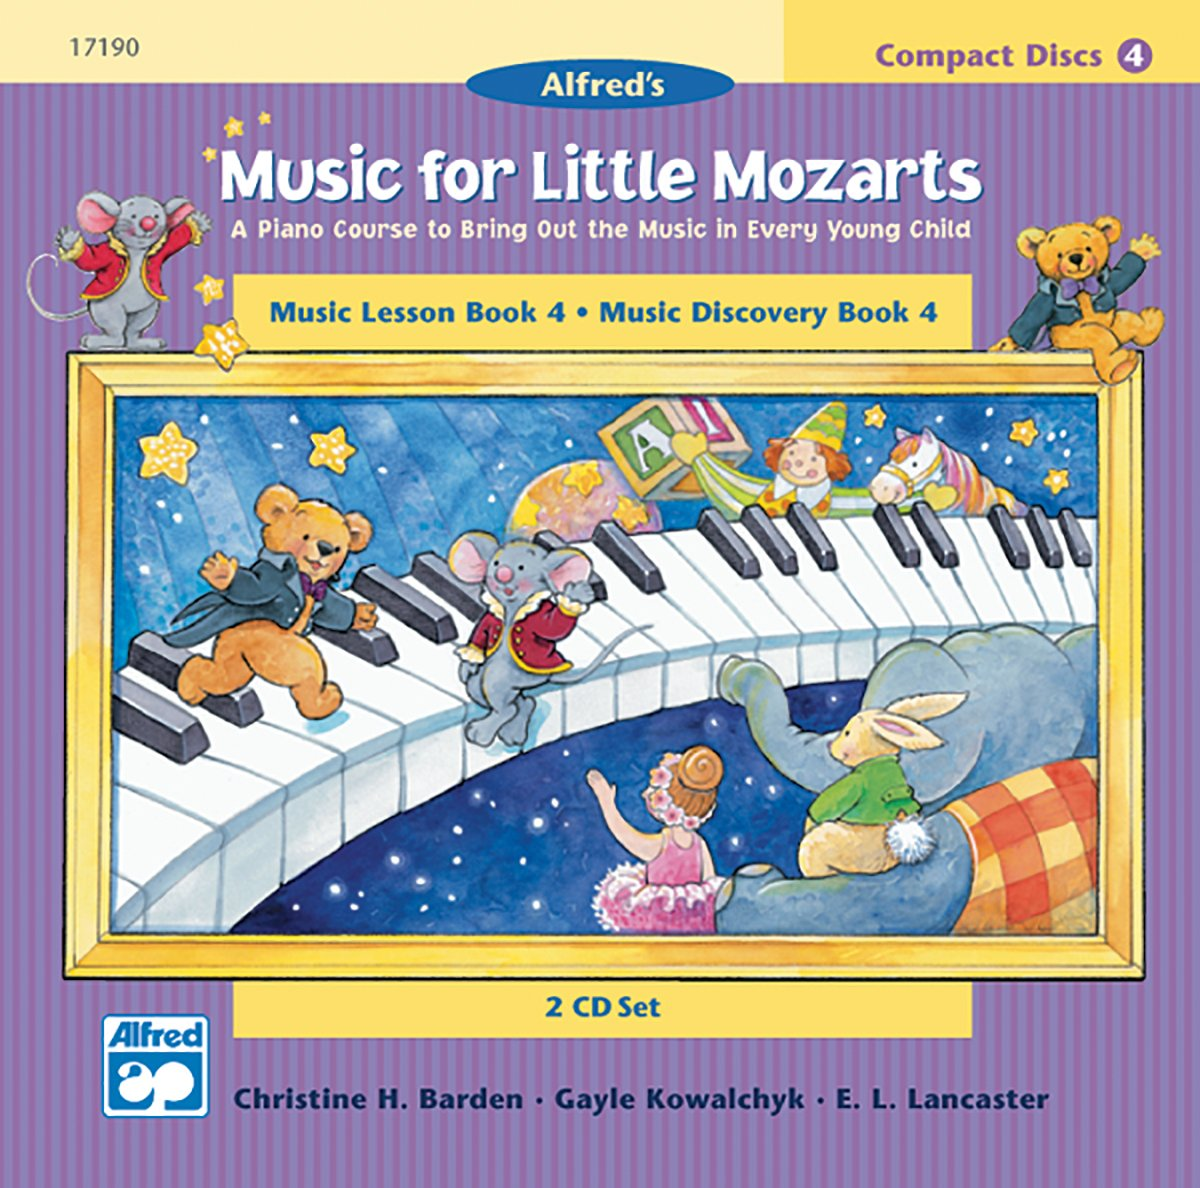 Music for Little Mozarts 2-CD Sets for Lesson and Discovery Books: A Piano Course to Bring Out the Music in Every Young Child (Level 4), 2 CDs ebook